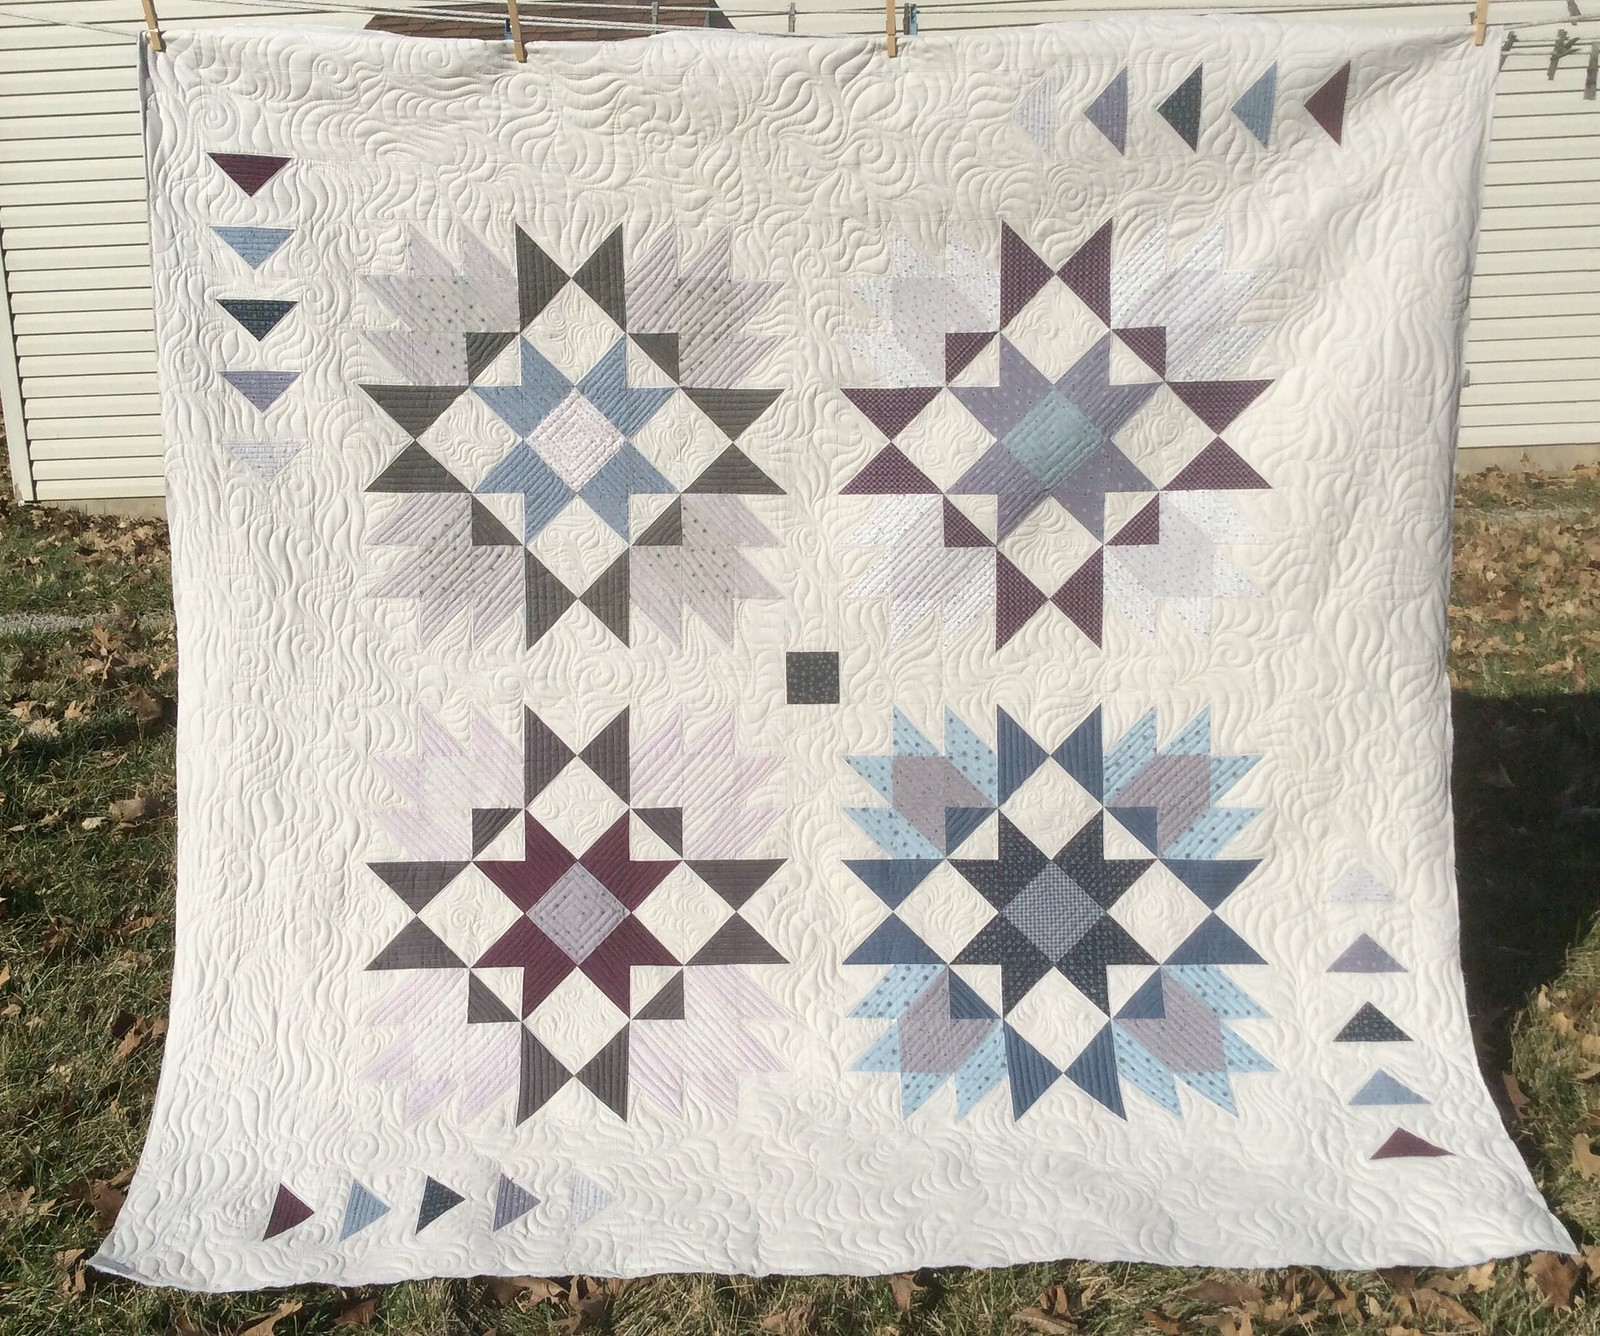 Cathy's Isabella Quilt